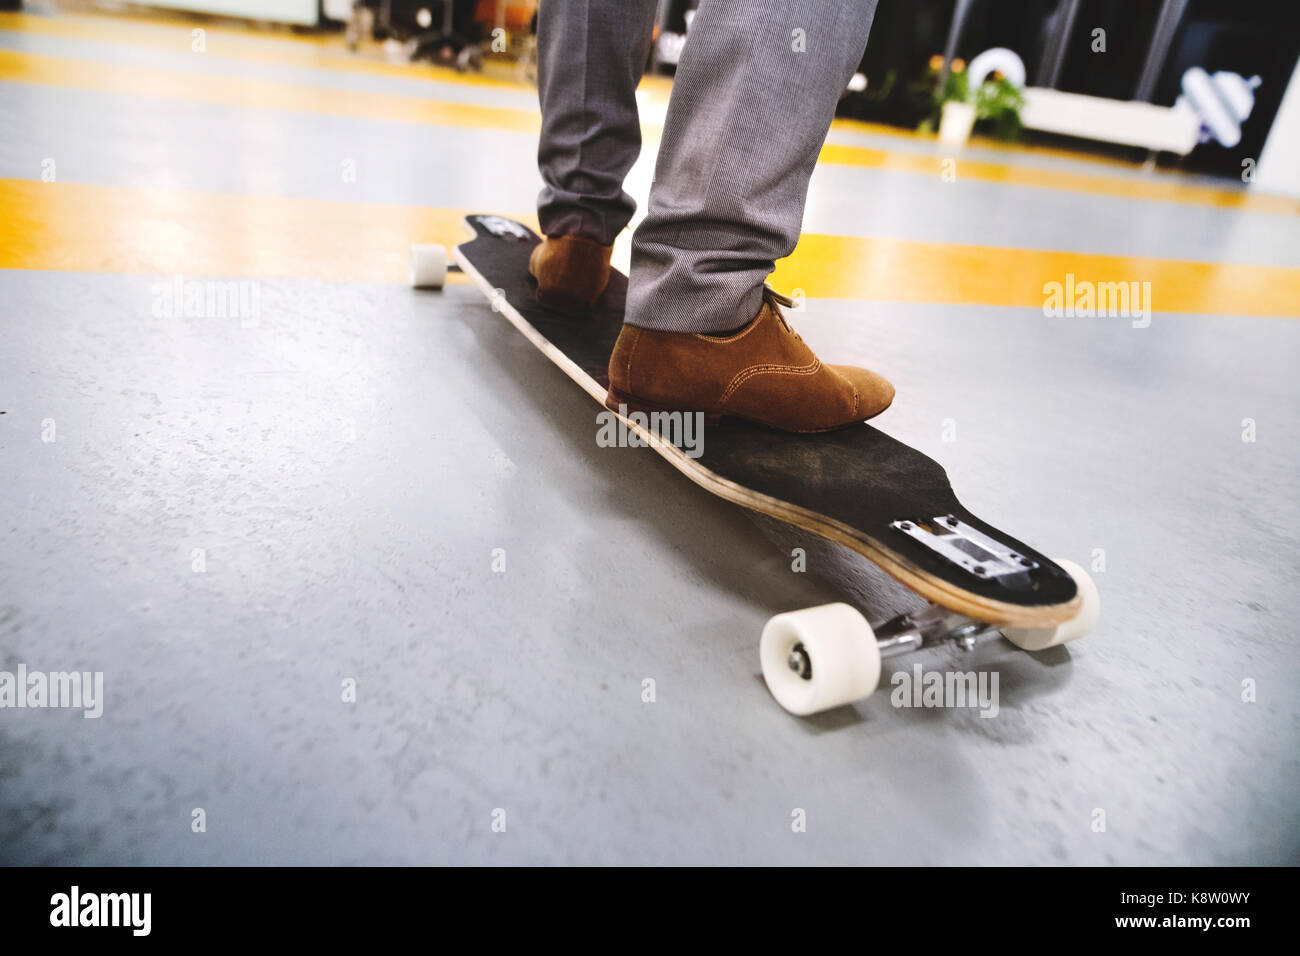 Unrecognizable businessman standing on longboard. - Stock Image